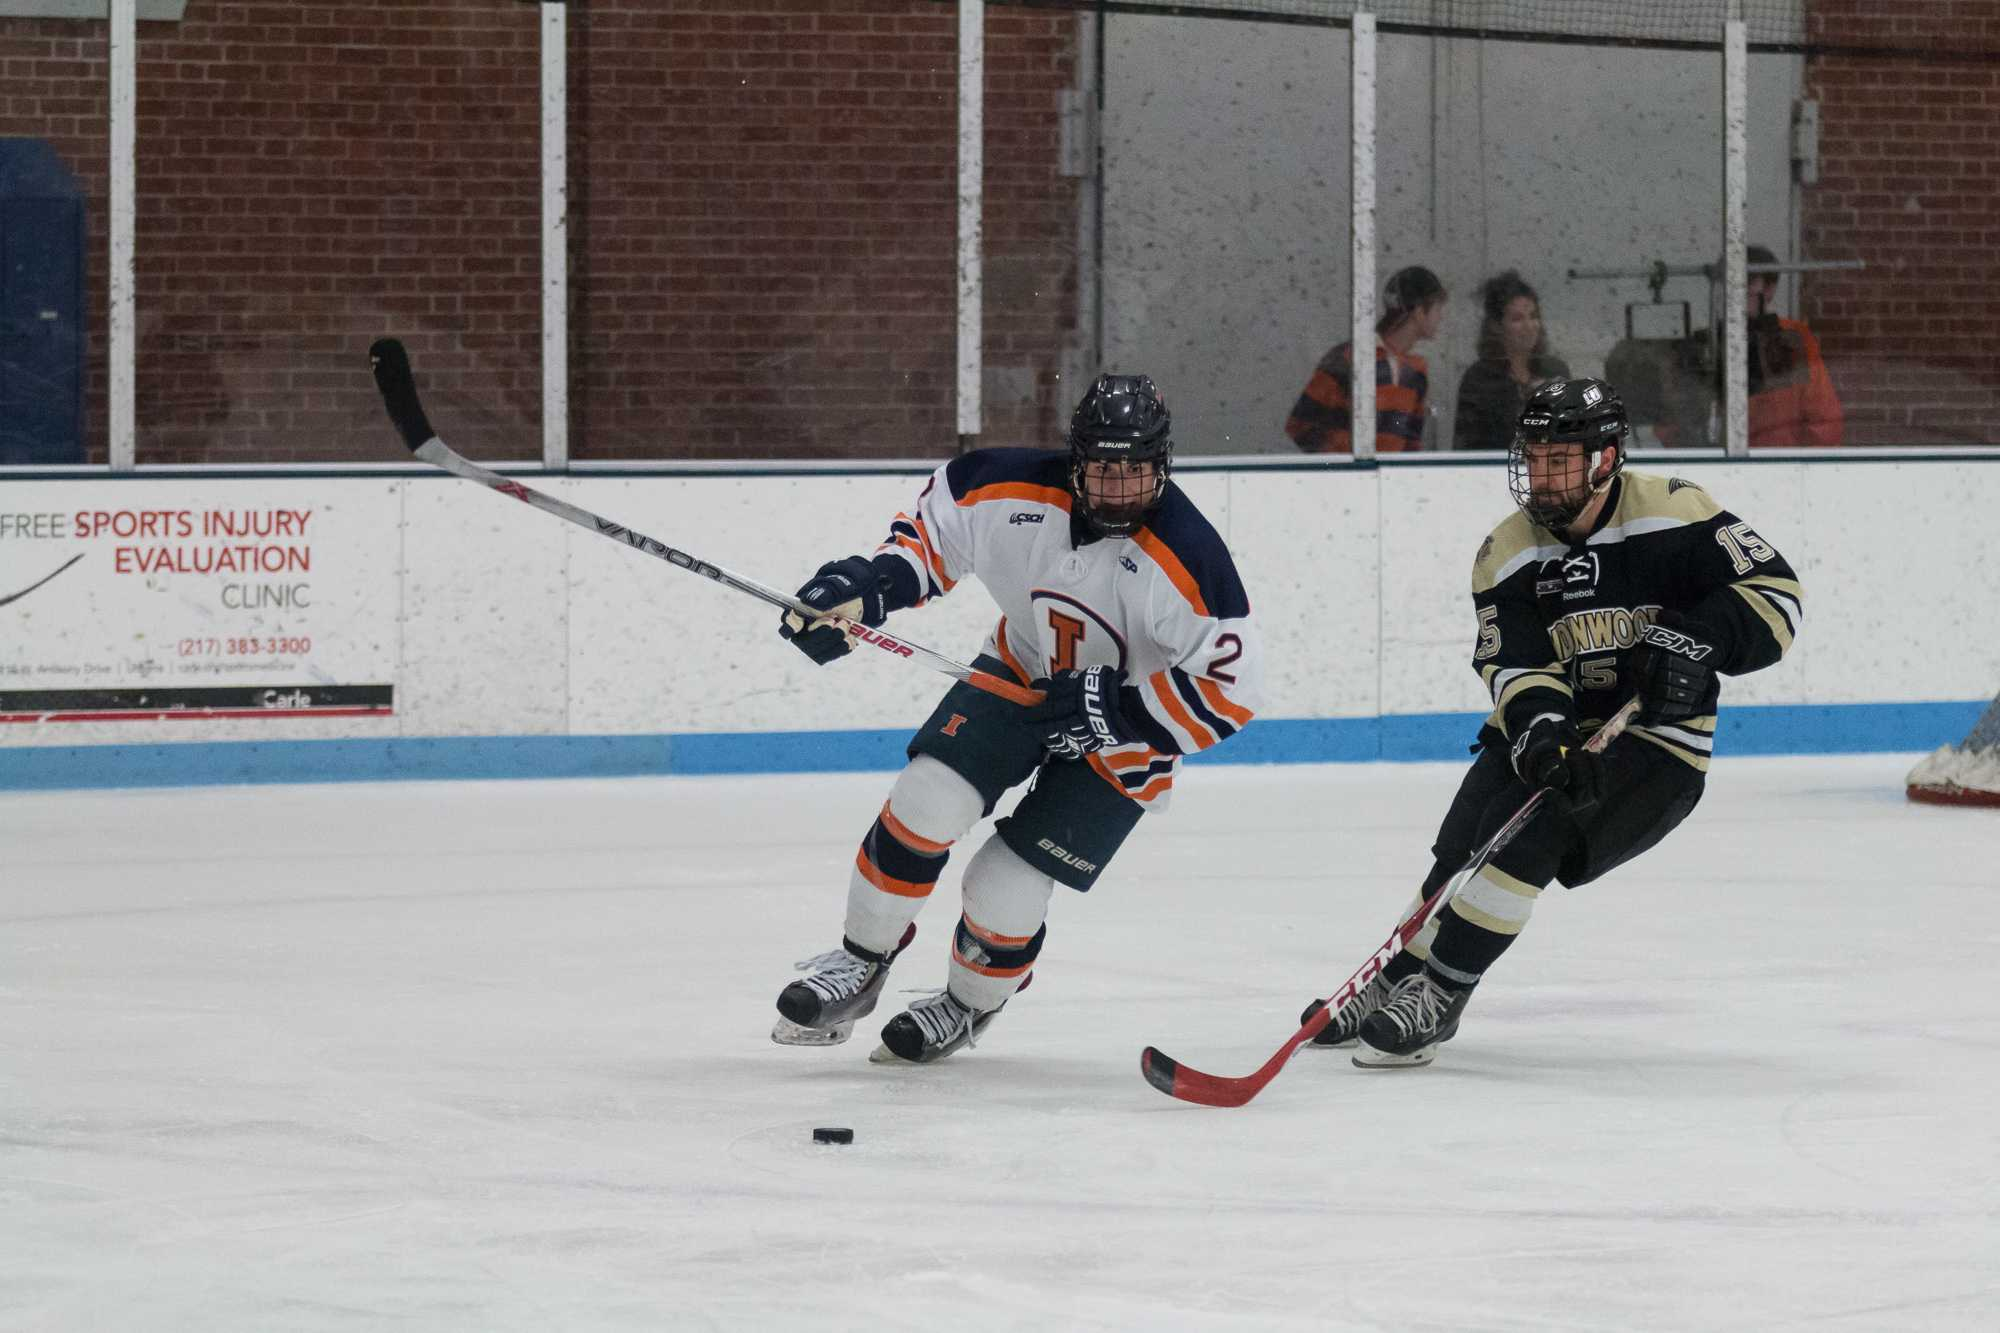 Illinois' Joey Ritondale fights for the puck during the game against Lindenwold University at the Ice Arena on Saturday, January 30. The Illini lost 4-1.